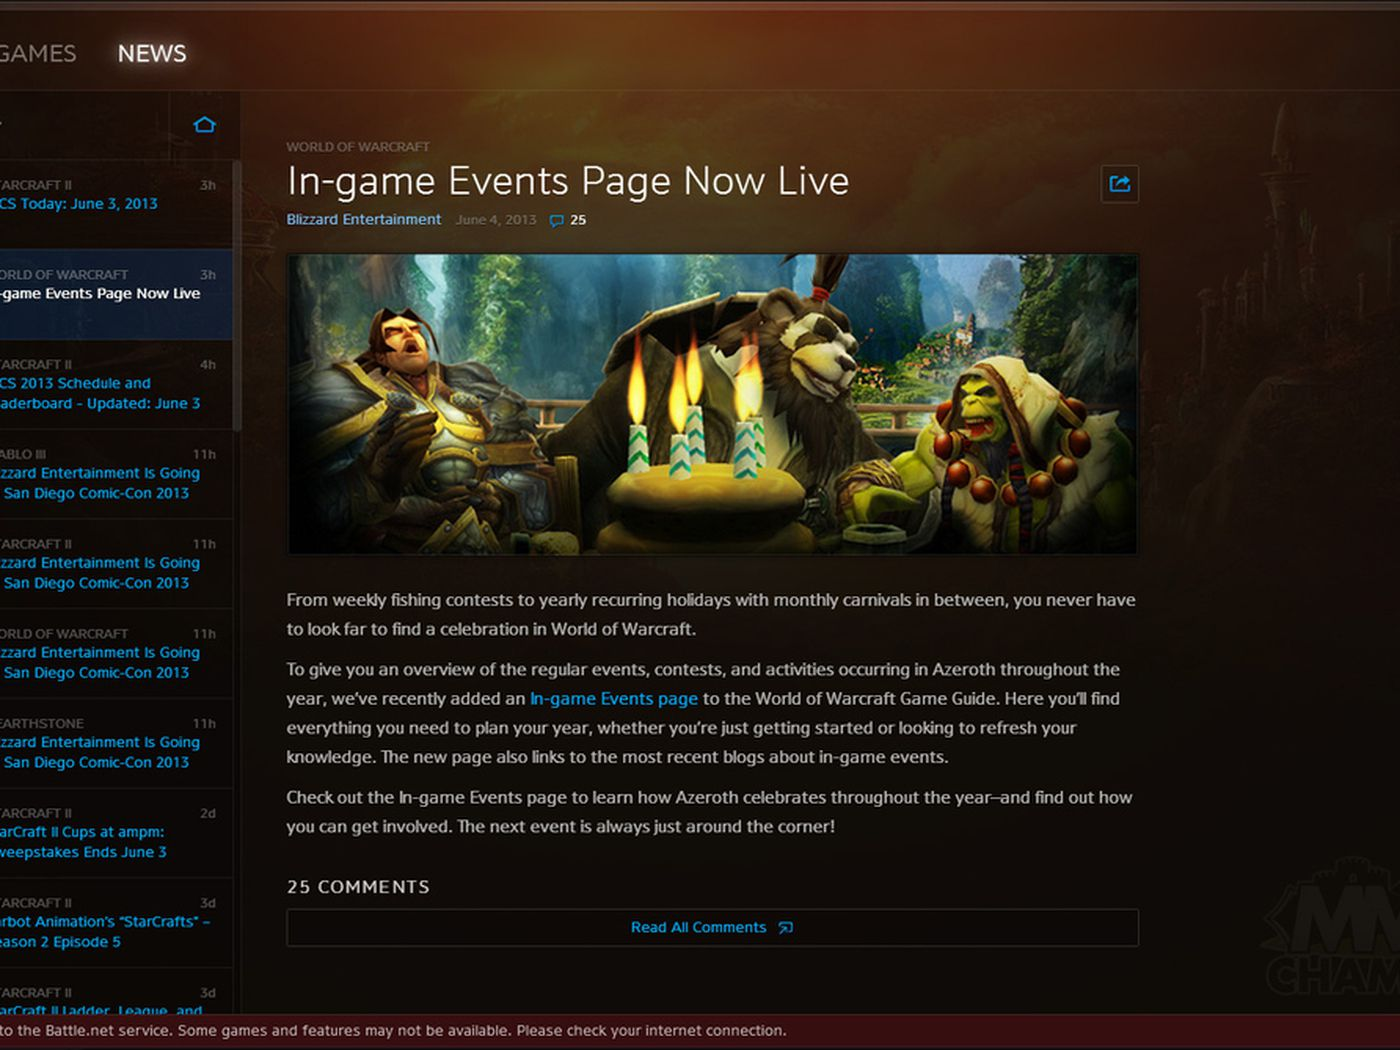 Battlenet Desktop App Incoming According To Blizzard Support Pages